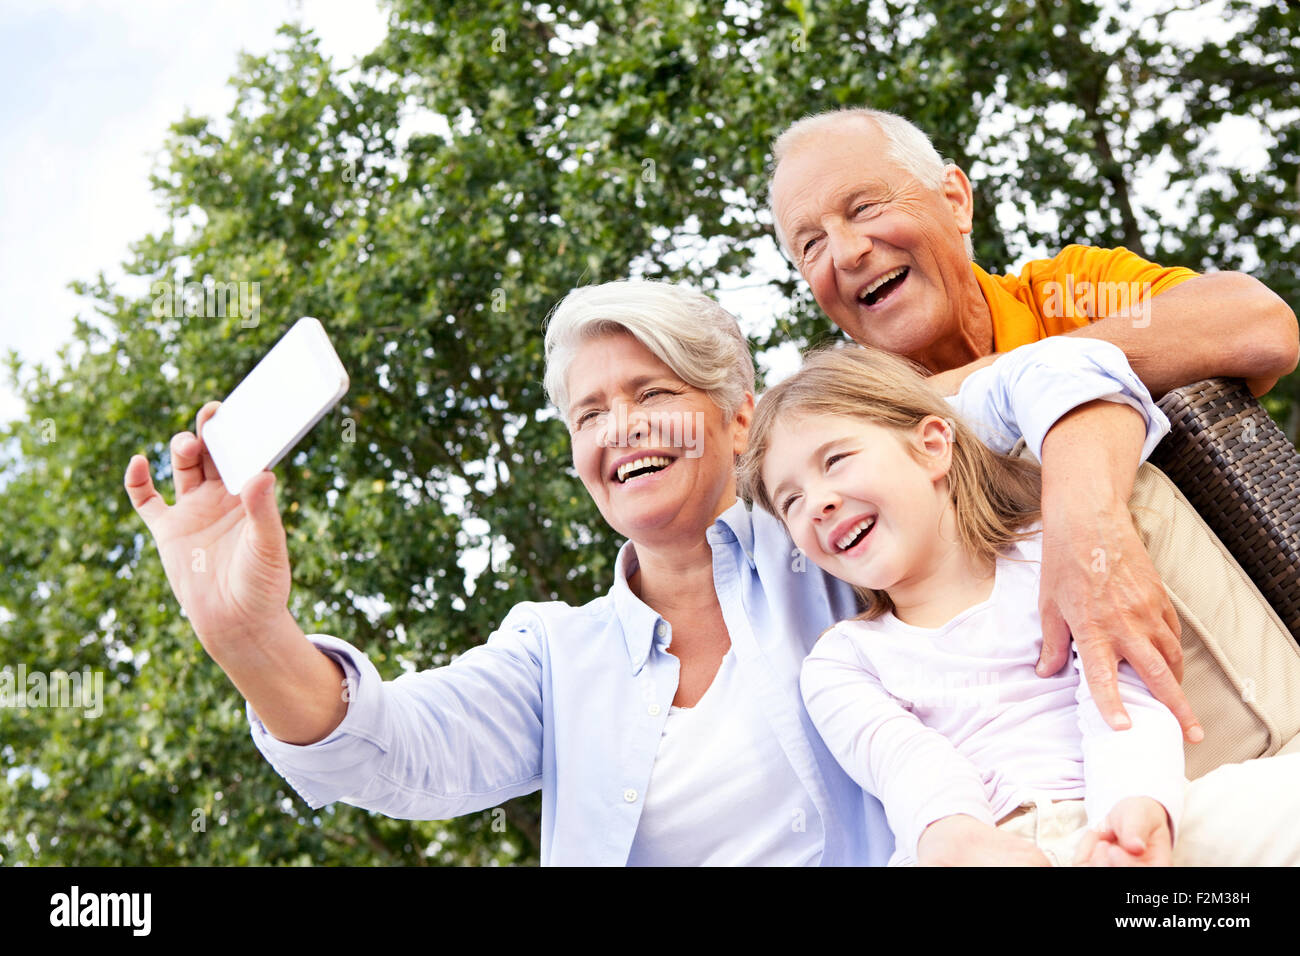 Happy grandparents and girl outdoors taking a cell phone picture - Stock Image